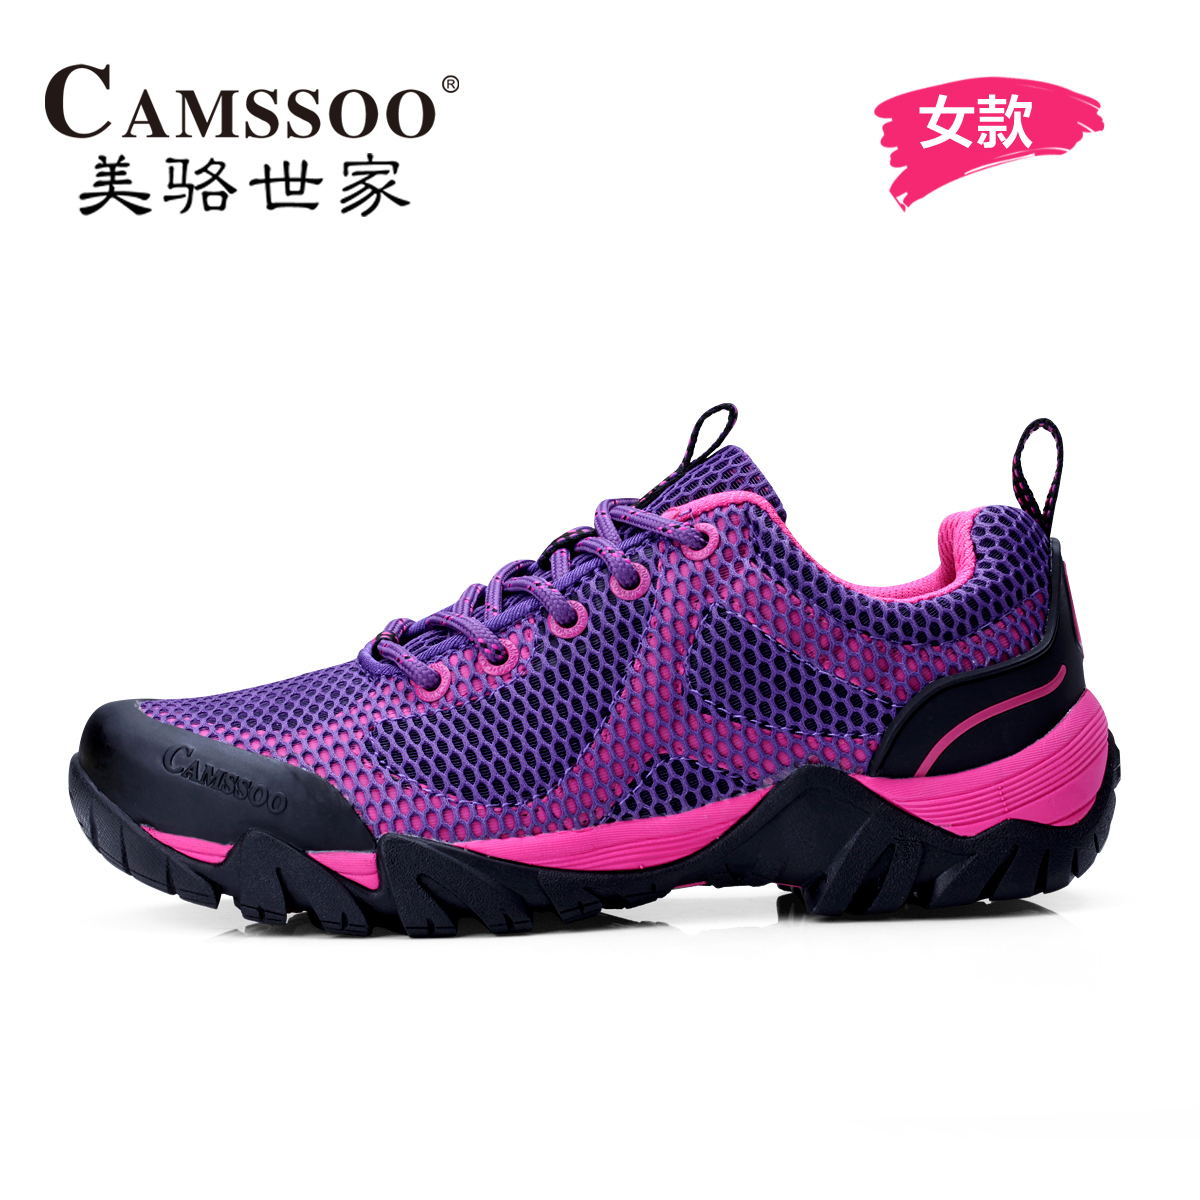 Us luo family hiking damping female outdoor hiking shoes hiking shoes lightweight mesh shoes men's shoes breathable slip in autumn and winter shoes